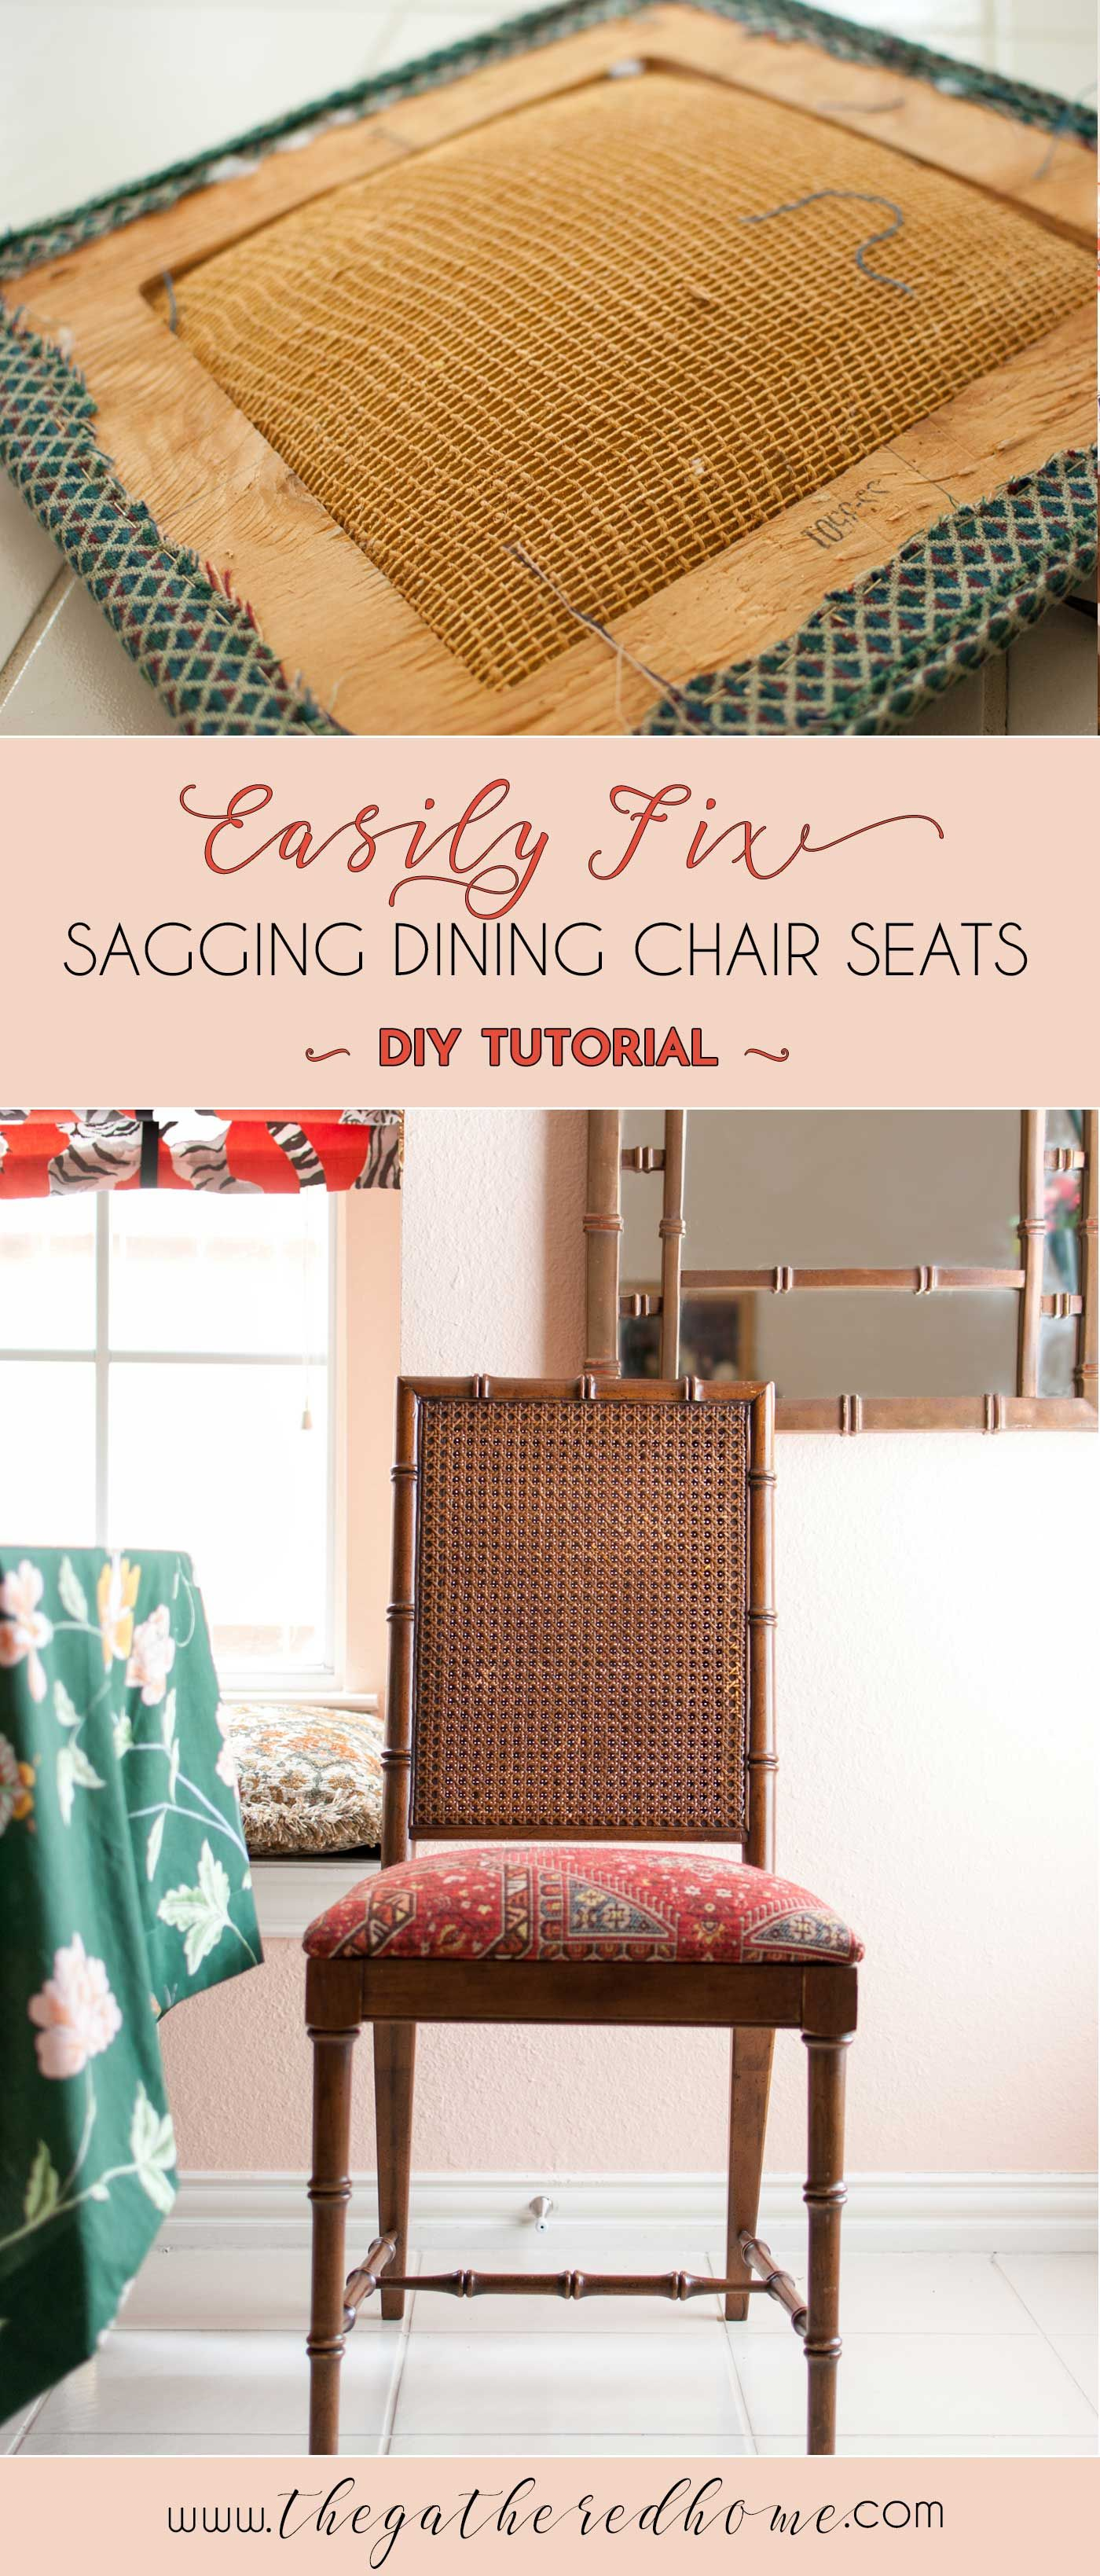 Incredible How To Fix A Sagging Dining Chair Seat Ideas For Tondra Interior Design Ideas Gentotthenellocom